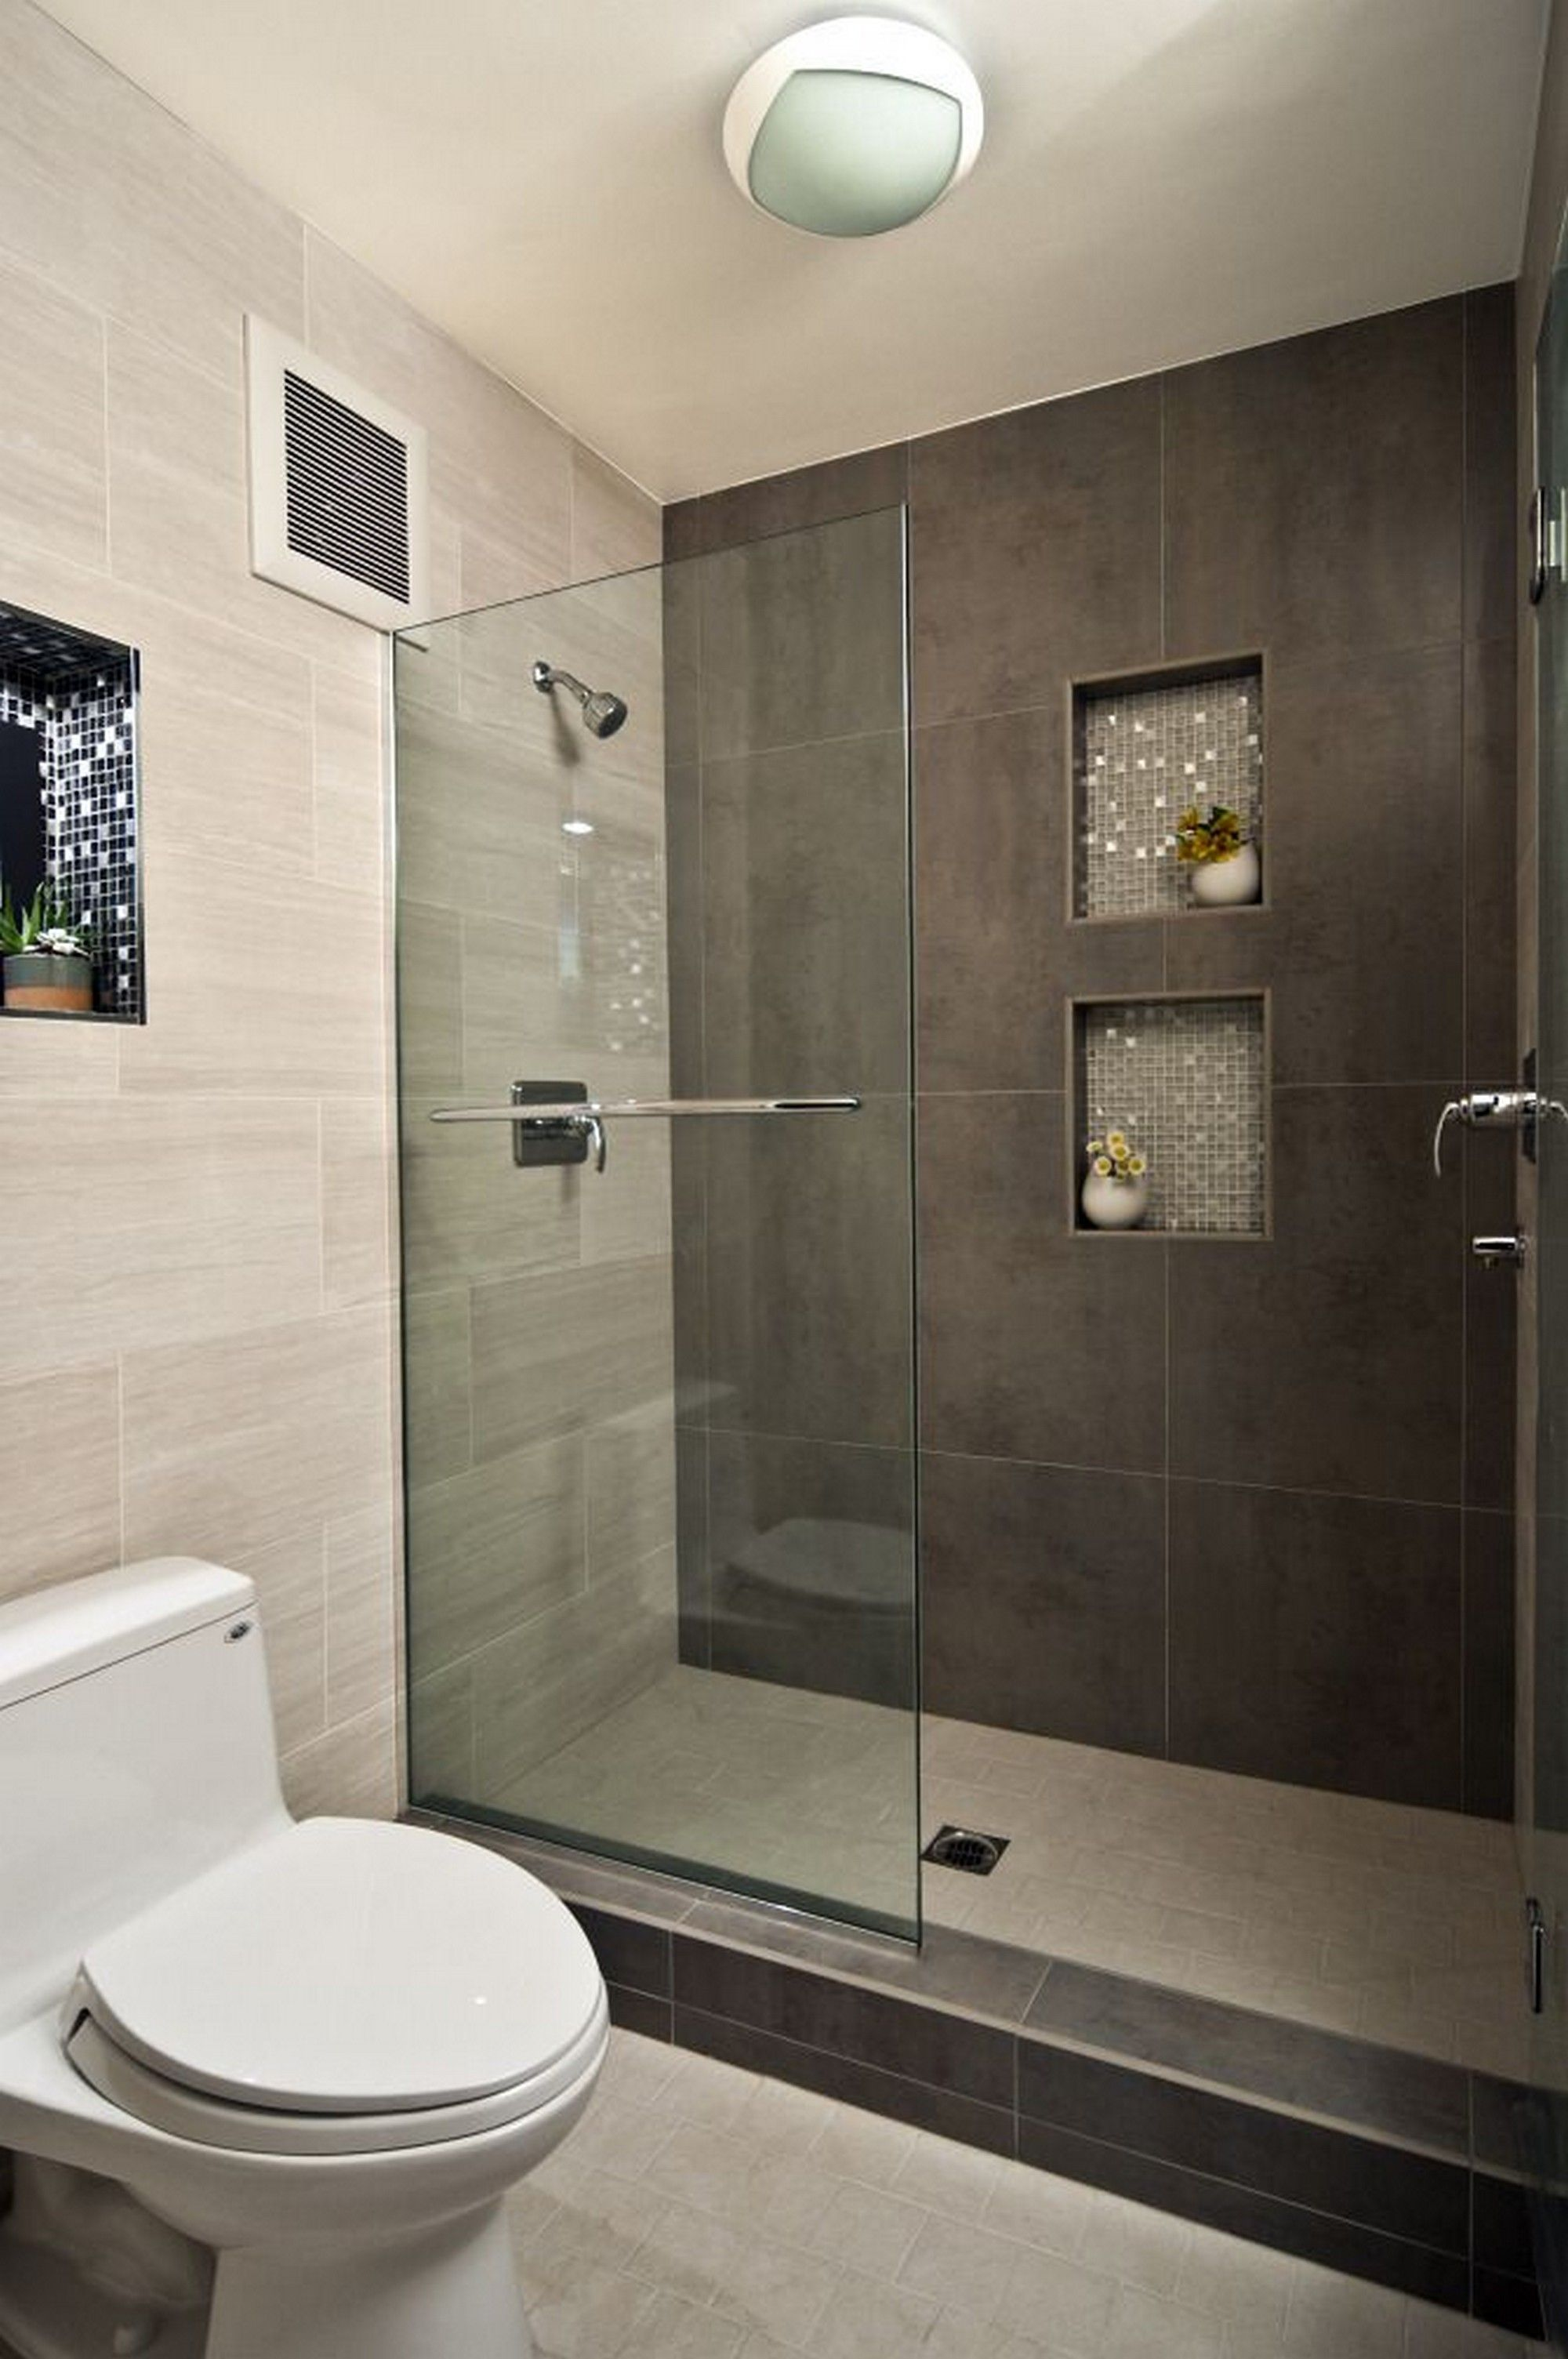 Modern bathroom design ideas with walk in shower small for Bathroom designs pictures